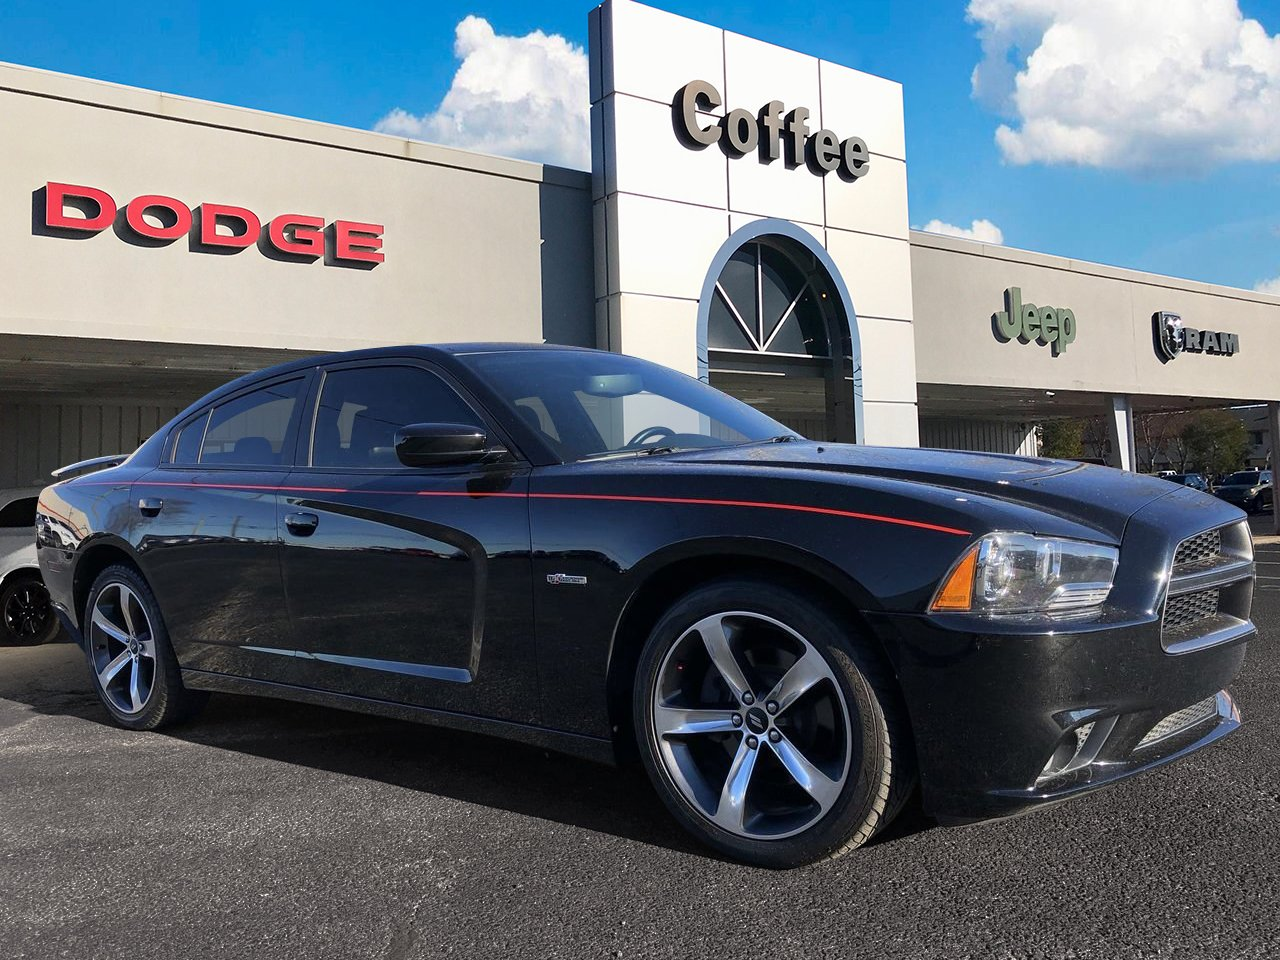 2014 Dodge Charger Rt For Sale >> Used 2014 Dodge Charger Rt 100th Anniversary For Sale In Hinesville Ga Near Fort Stewart Richmond Hill Ga 21326581